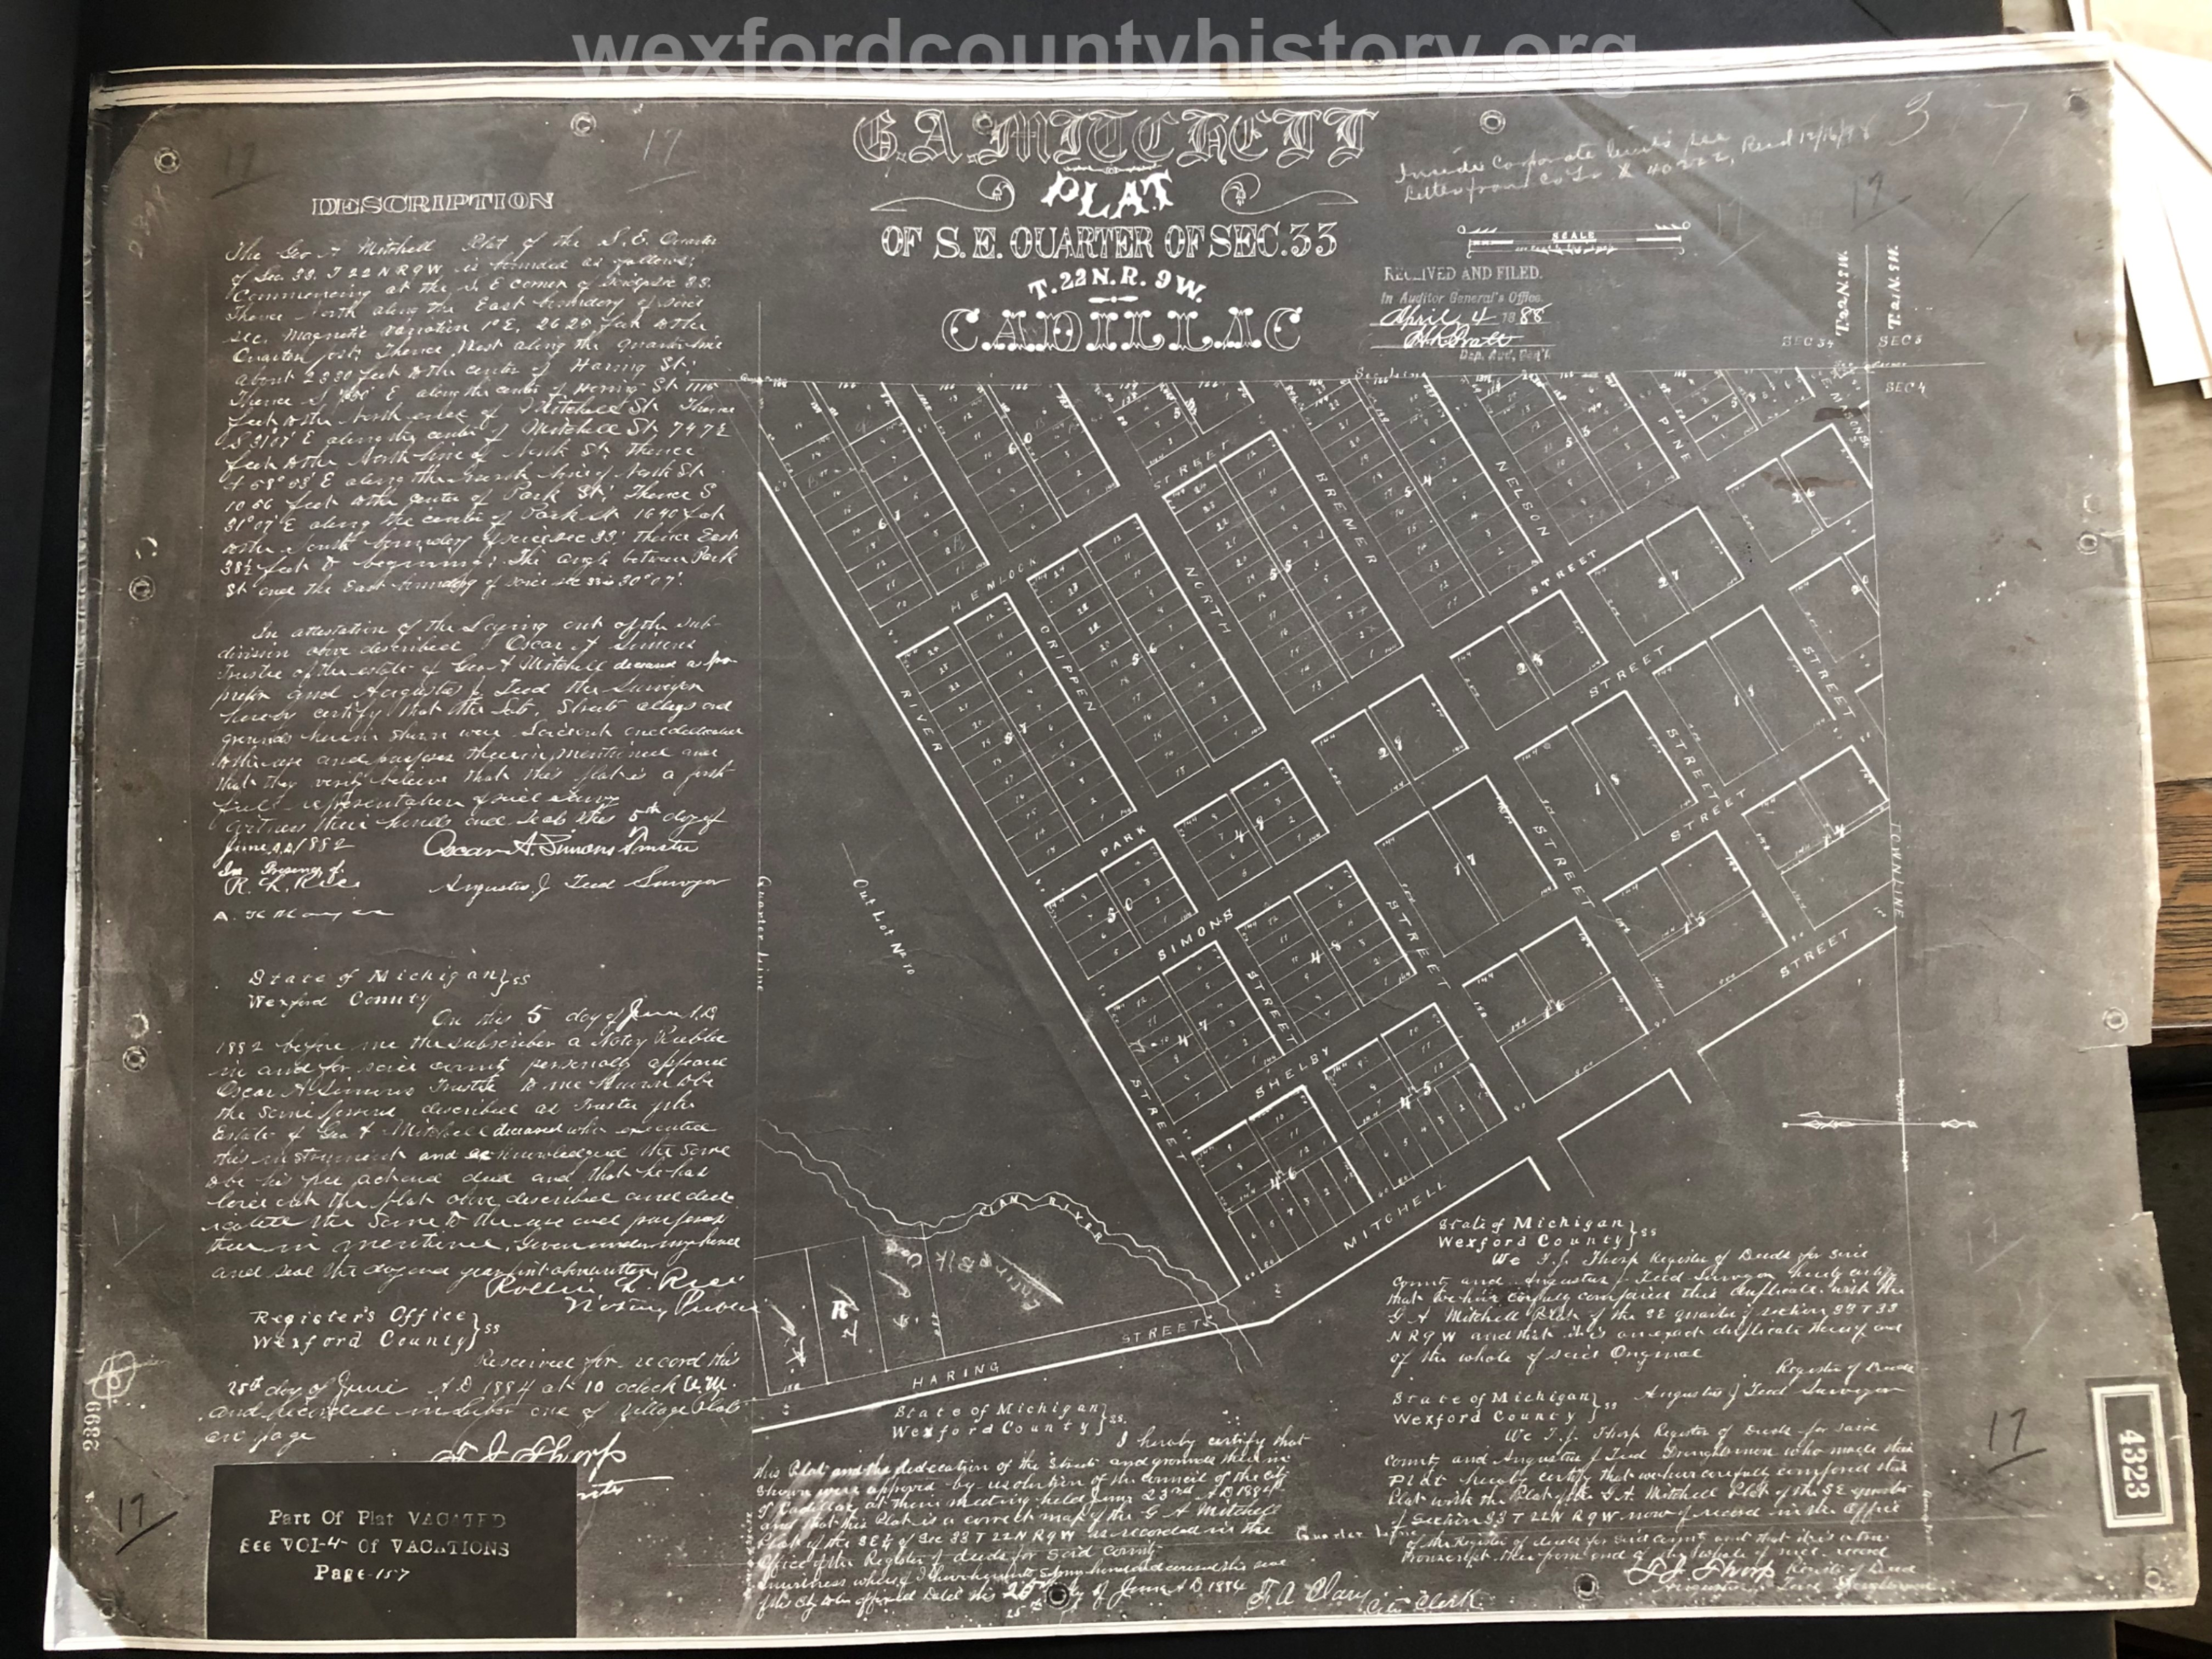 1888 - George A. Mitchell's Plat Of The Southeast Quarter Of Section 33